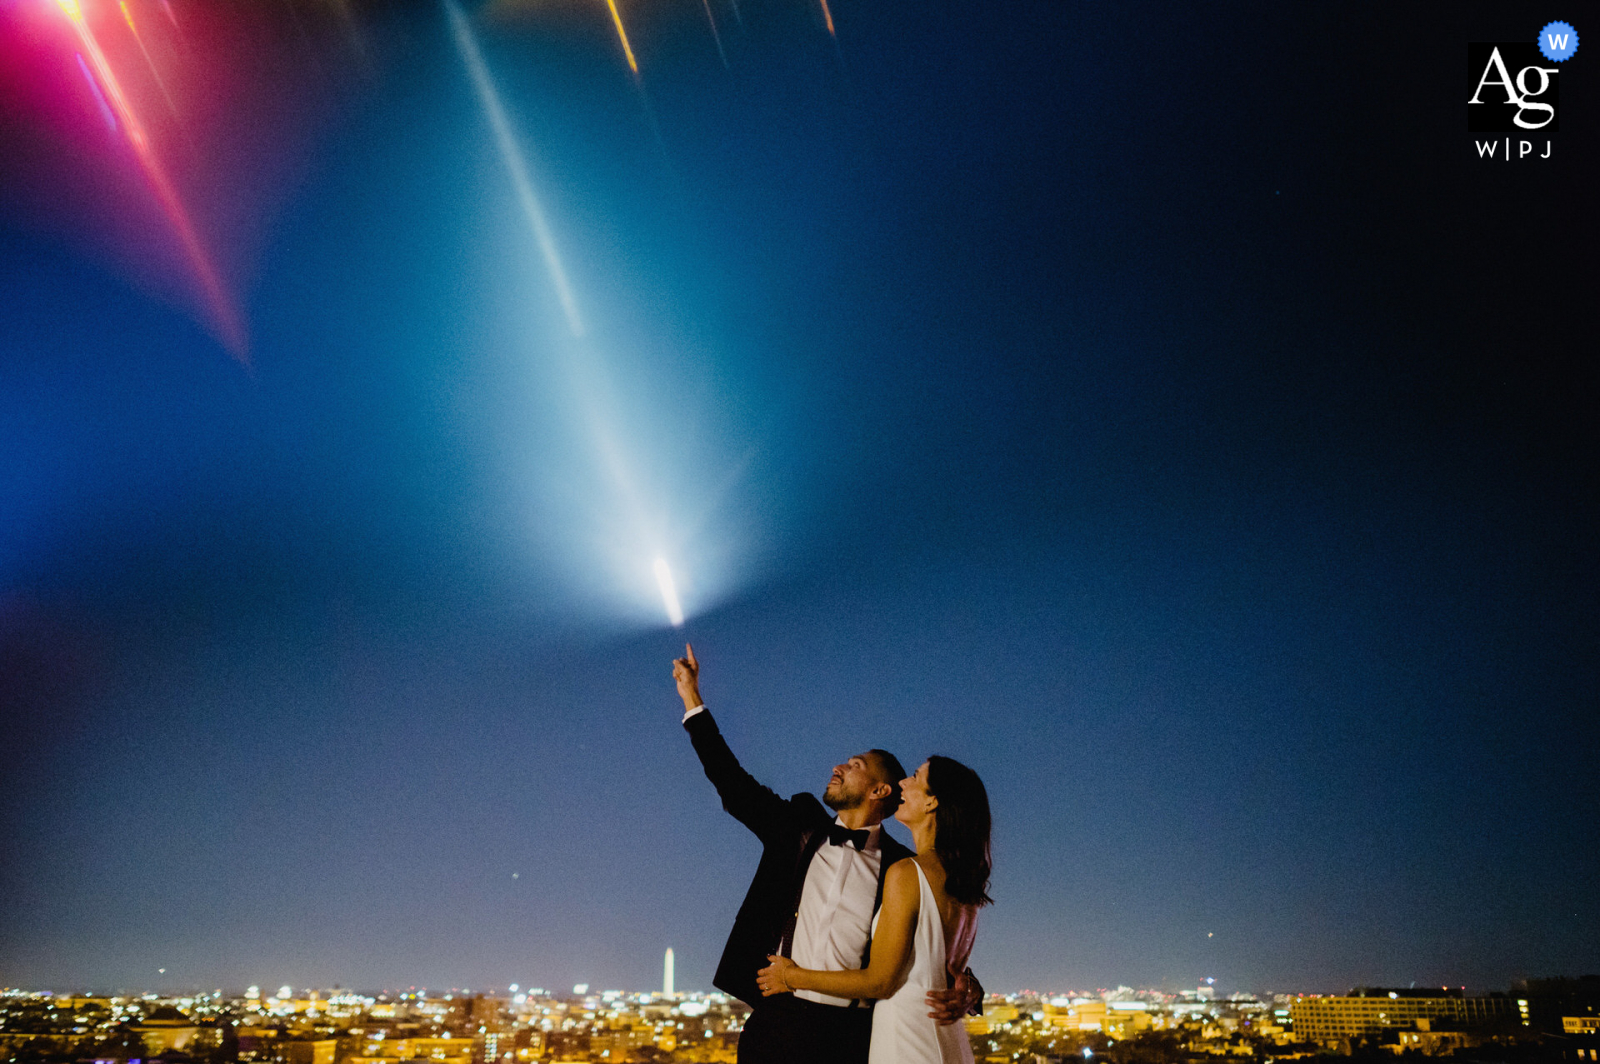 The Line, DC artistic wedding photo showing the groom is touching the shooting star